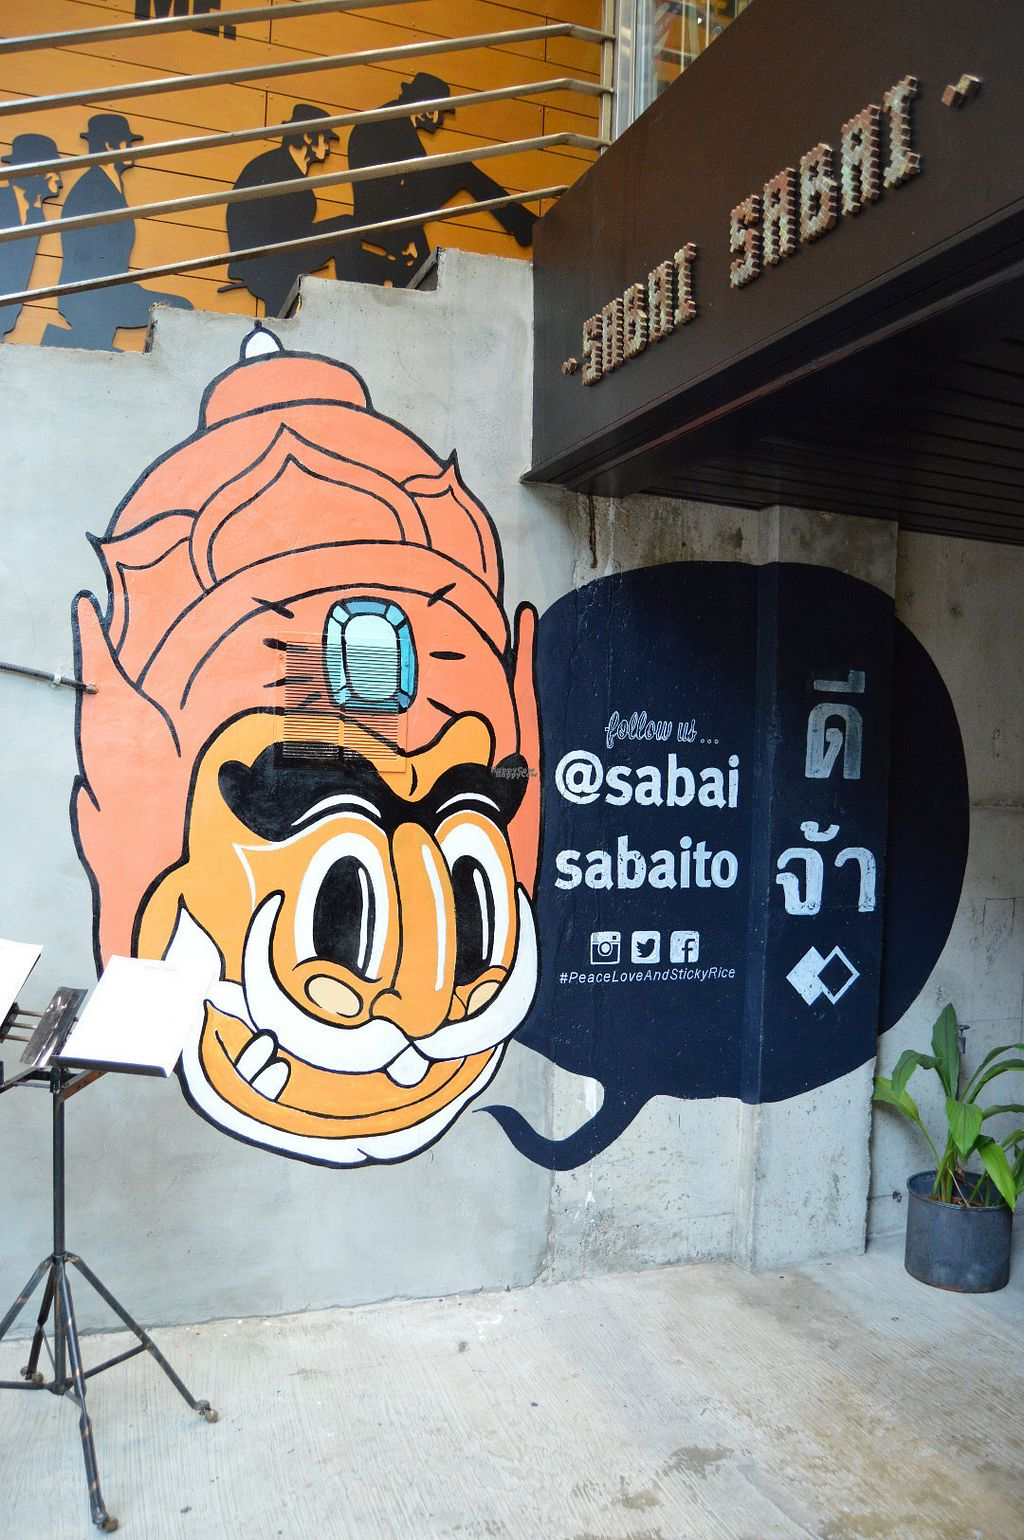 """Photo of Sabai Sabai  by <a href=""""/members/profile/Vegan%20GiGi"""">Vegan GiGi</a> <br/>Exterior of Sabai Sabai (new location on Bloor St East) <br/> October 21, 2016  - <a href='/contact/abuse/image/60010/183448'>Report</a>"""